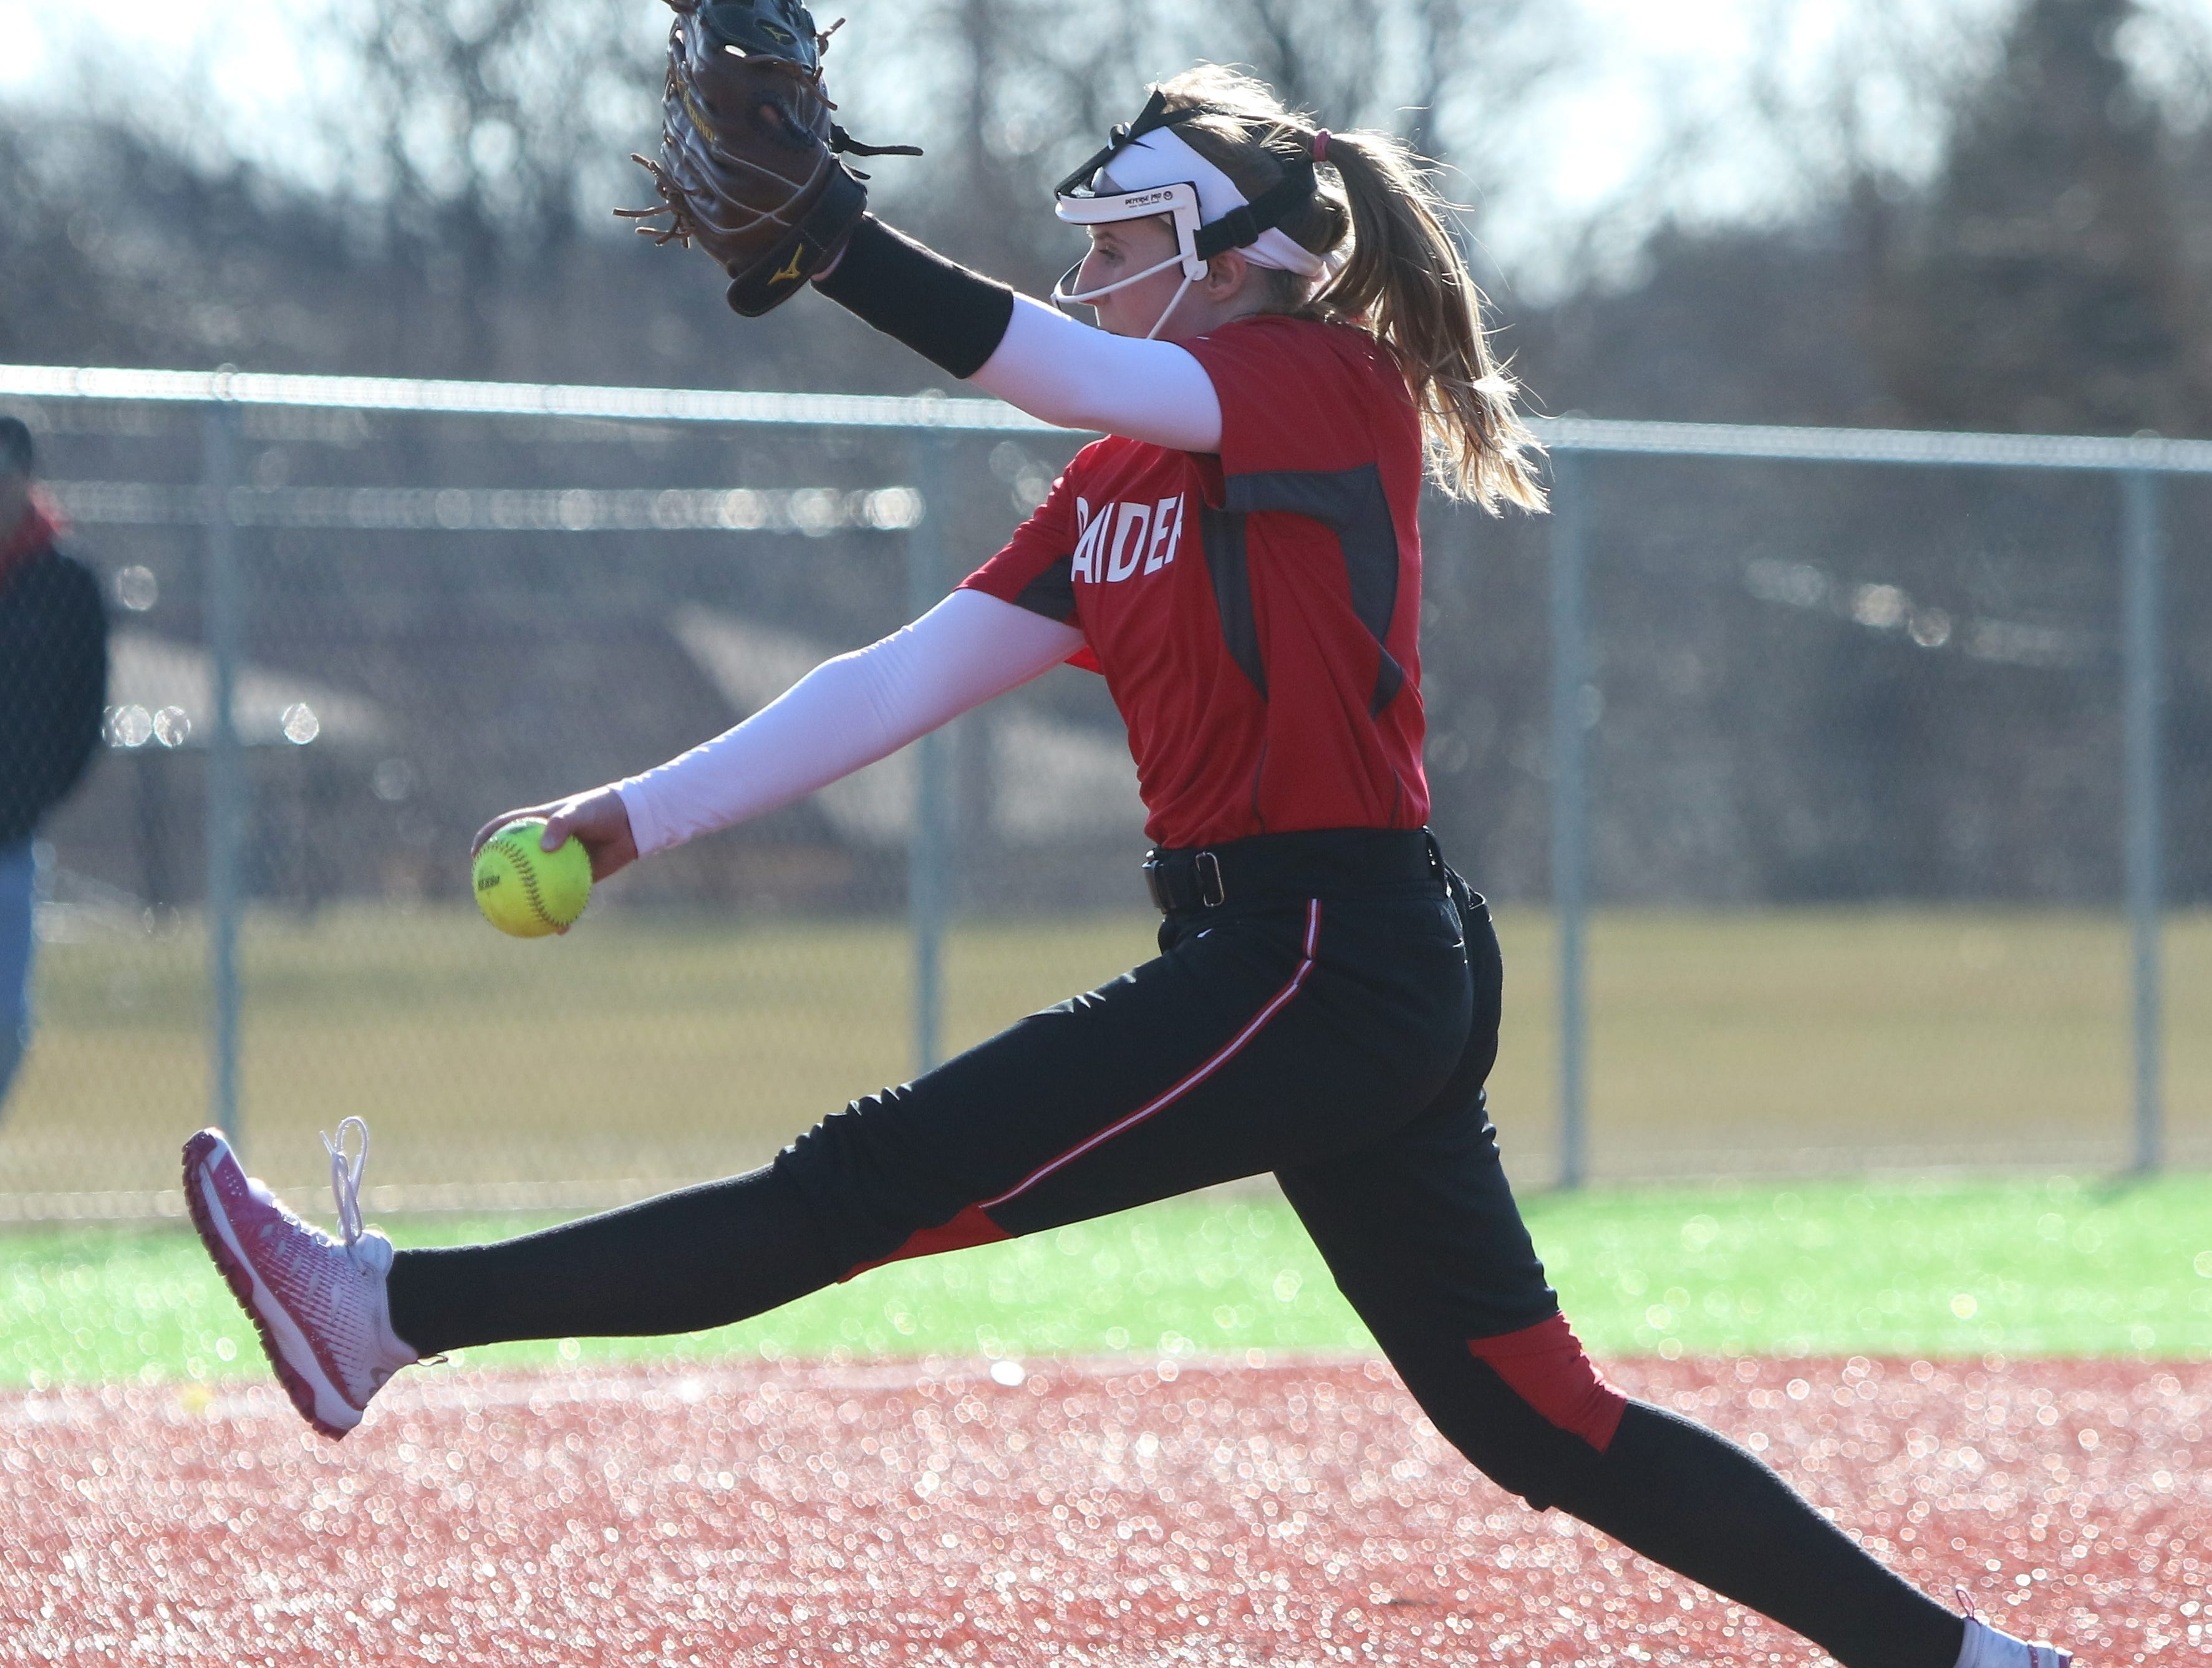 Wauwatosa East pitcher Stasia Raebel winds up for a pitch against Catholic Memorial on March 19, 2019.